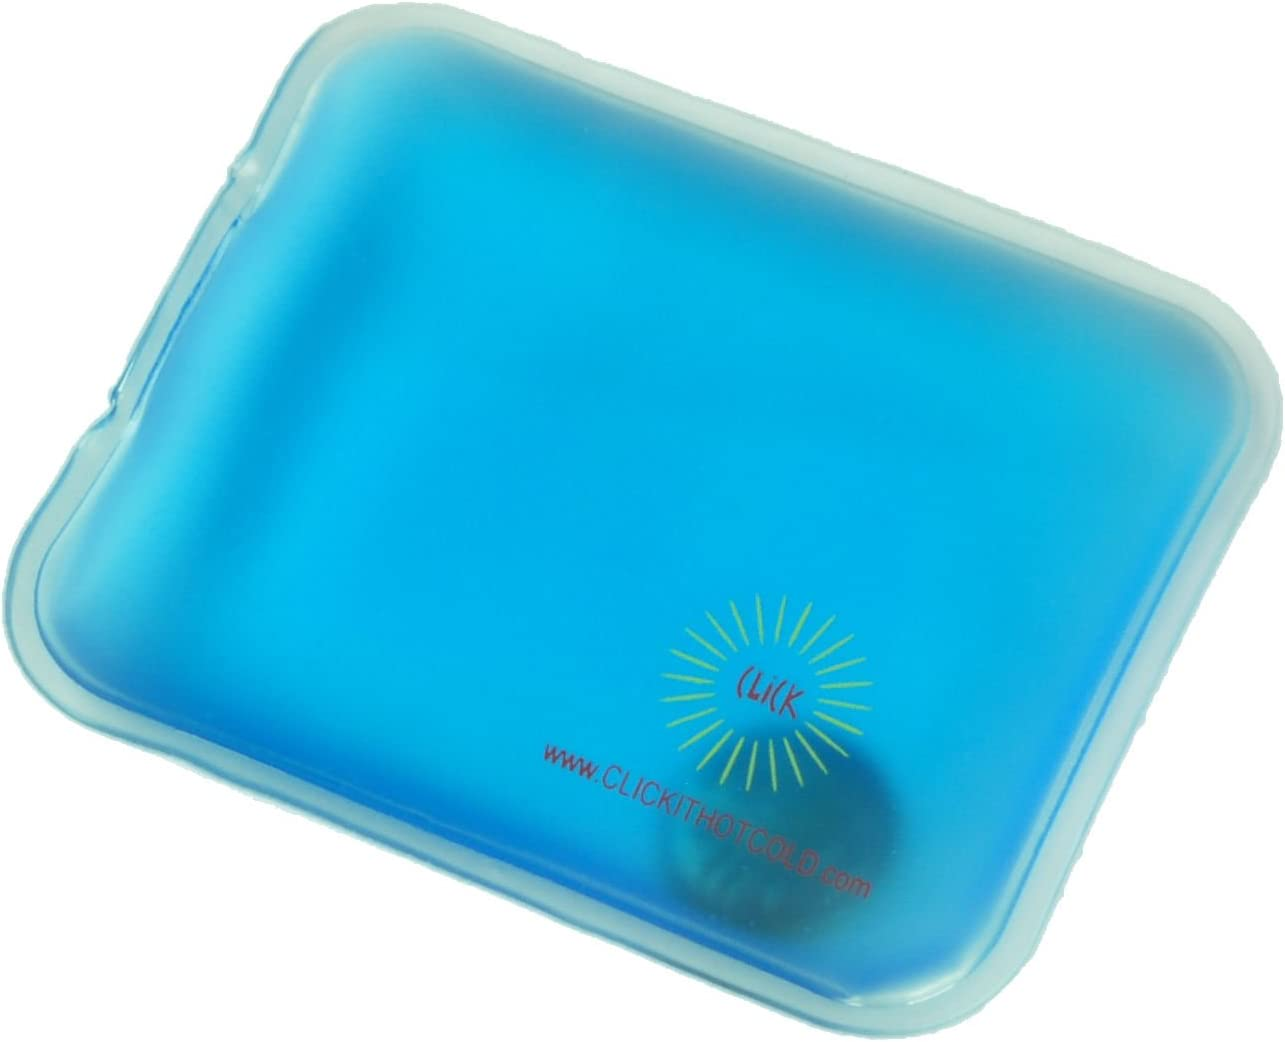 Click It Hot/Cold Reusable Gel Heating Pad (Pocket (Hand Warmer), Blue)